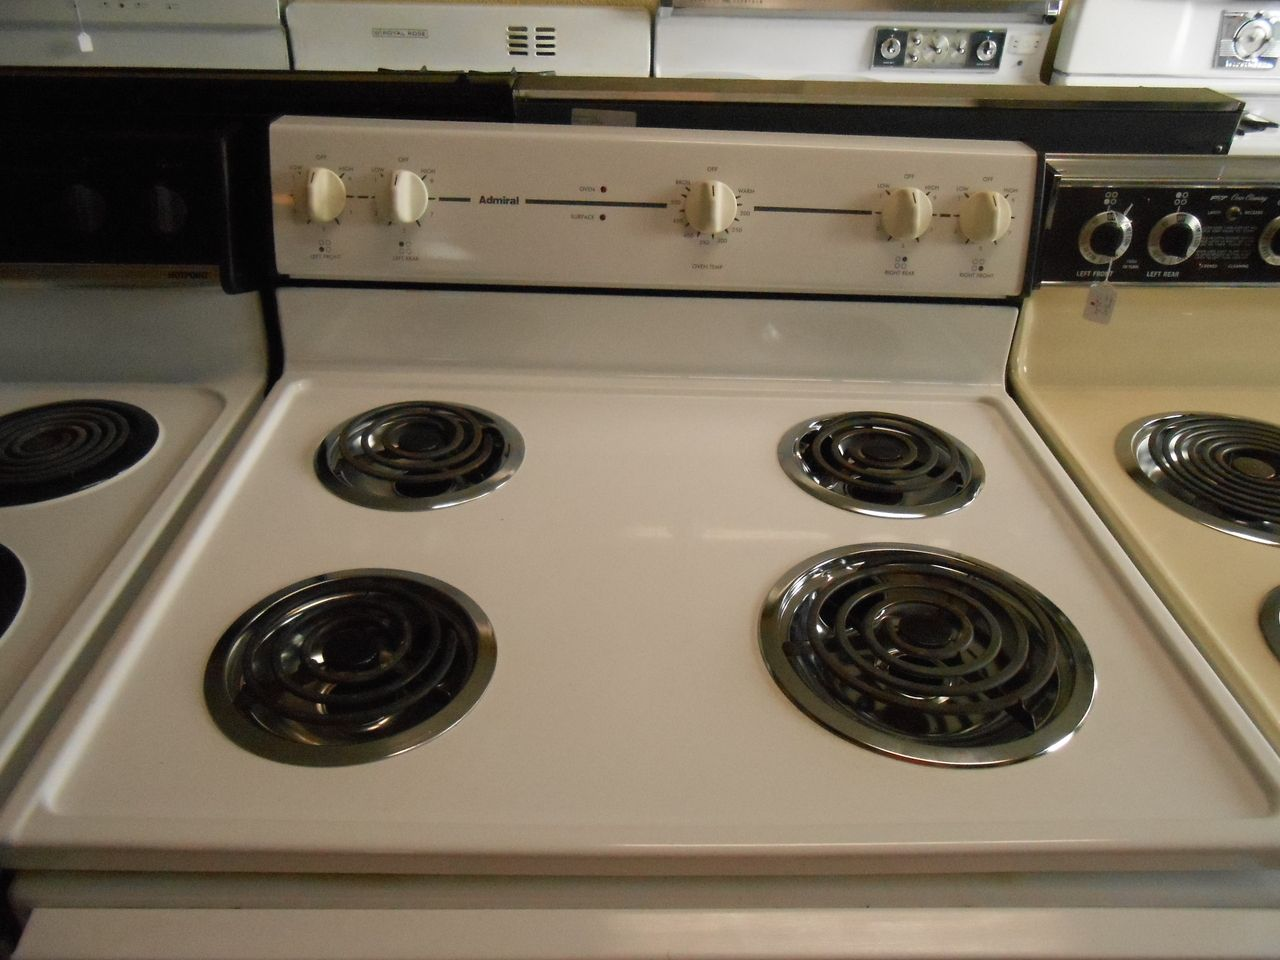 Appliance City Admiral Electric Range Coil Burners Small And